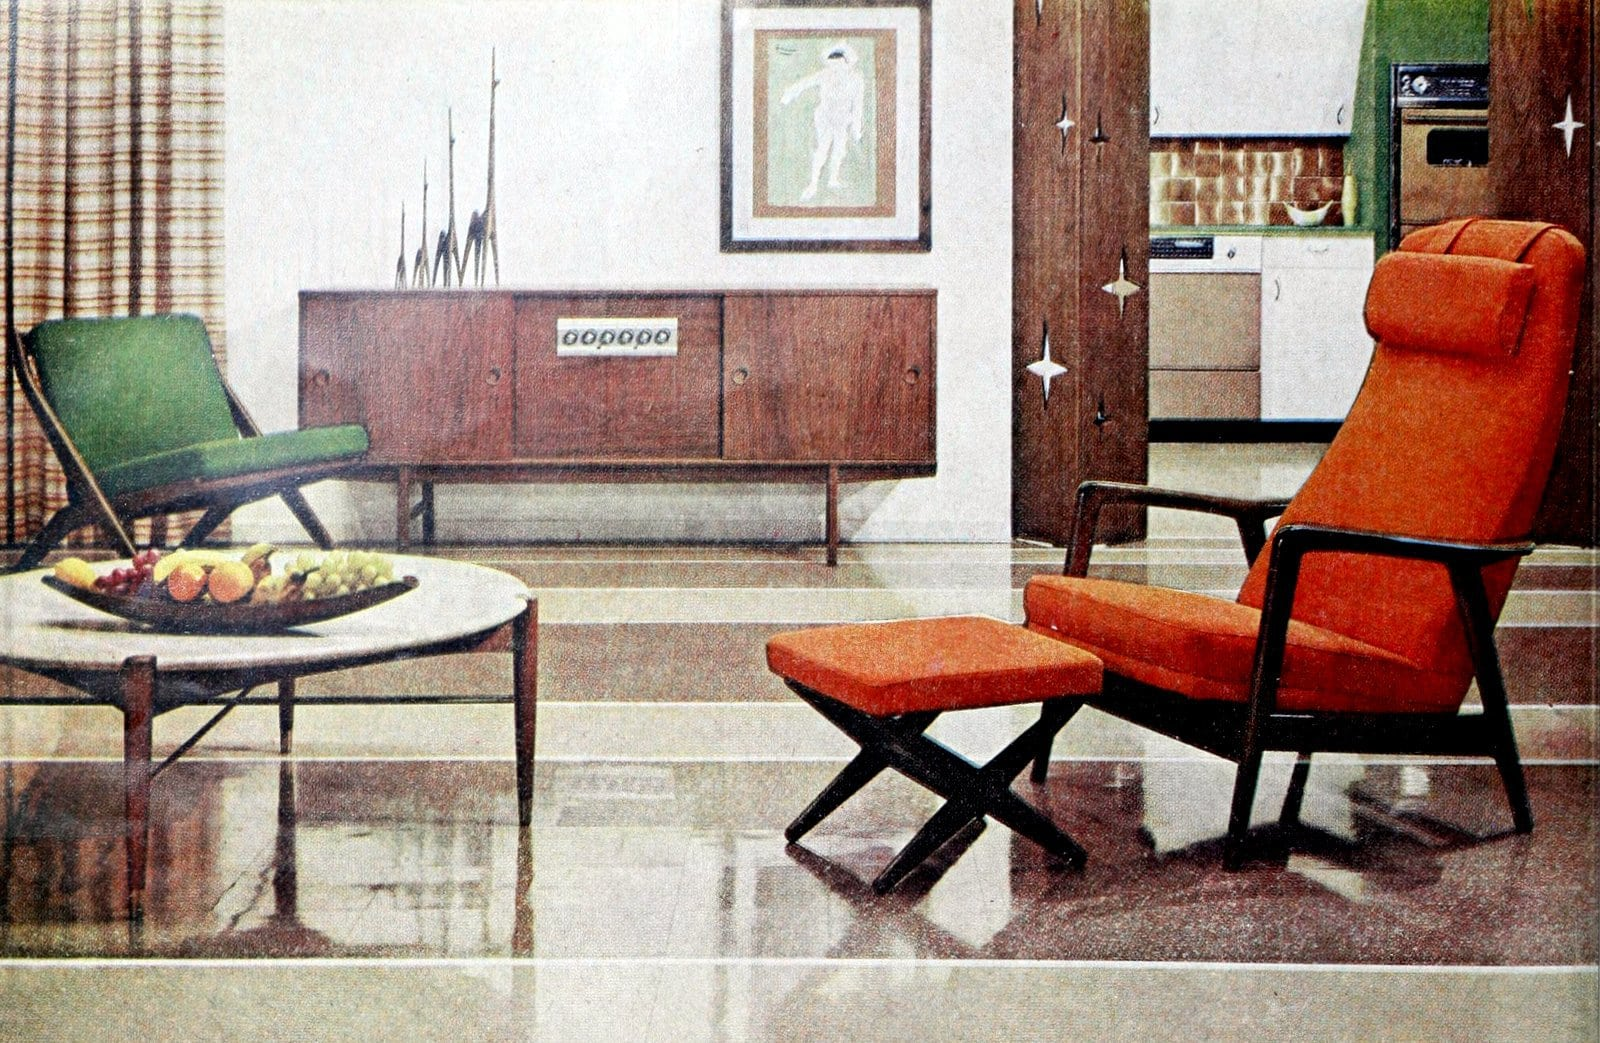 Mid-century modern furniture with two wood-framed chairs (1960)